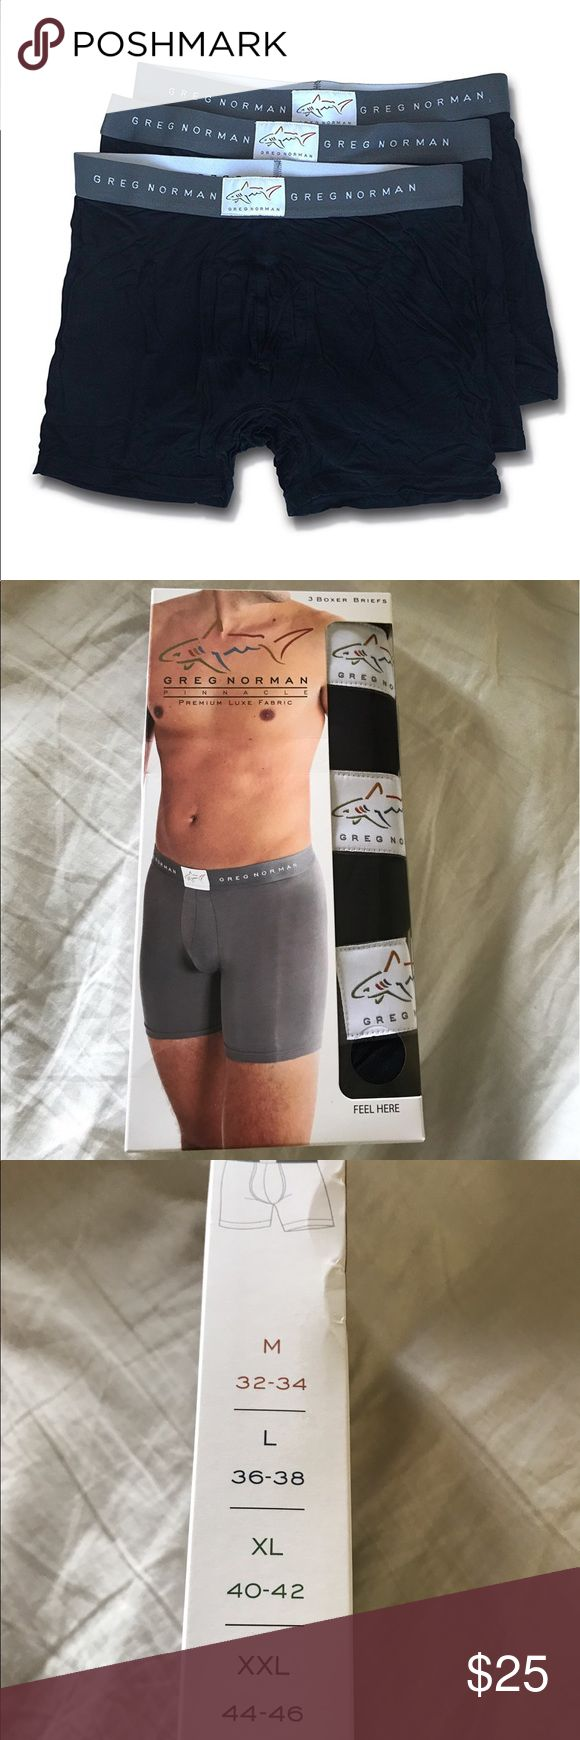 Greg Norman 3 Boxer Briefs Size XXL ( 44-46) Black Greg Norman Pinnacle Premium Luxe Fabric made of blend of modal and spandex. Combines luxury, comfort, and superior fit. modal and spandex 3 boxer briefs per box. Color Black Size XXLarge. Greg Norman Underwear & Socks Boxer Briefs